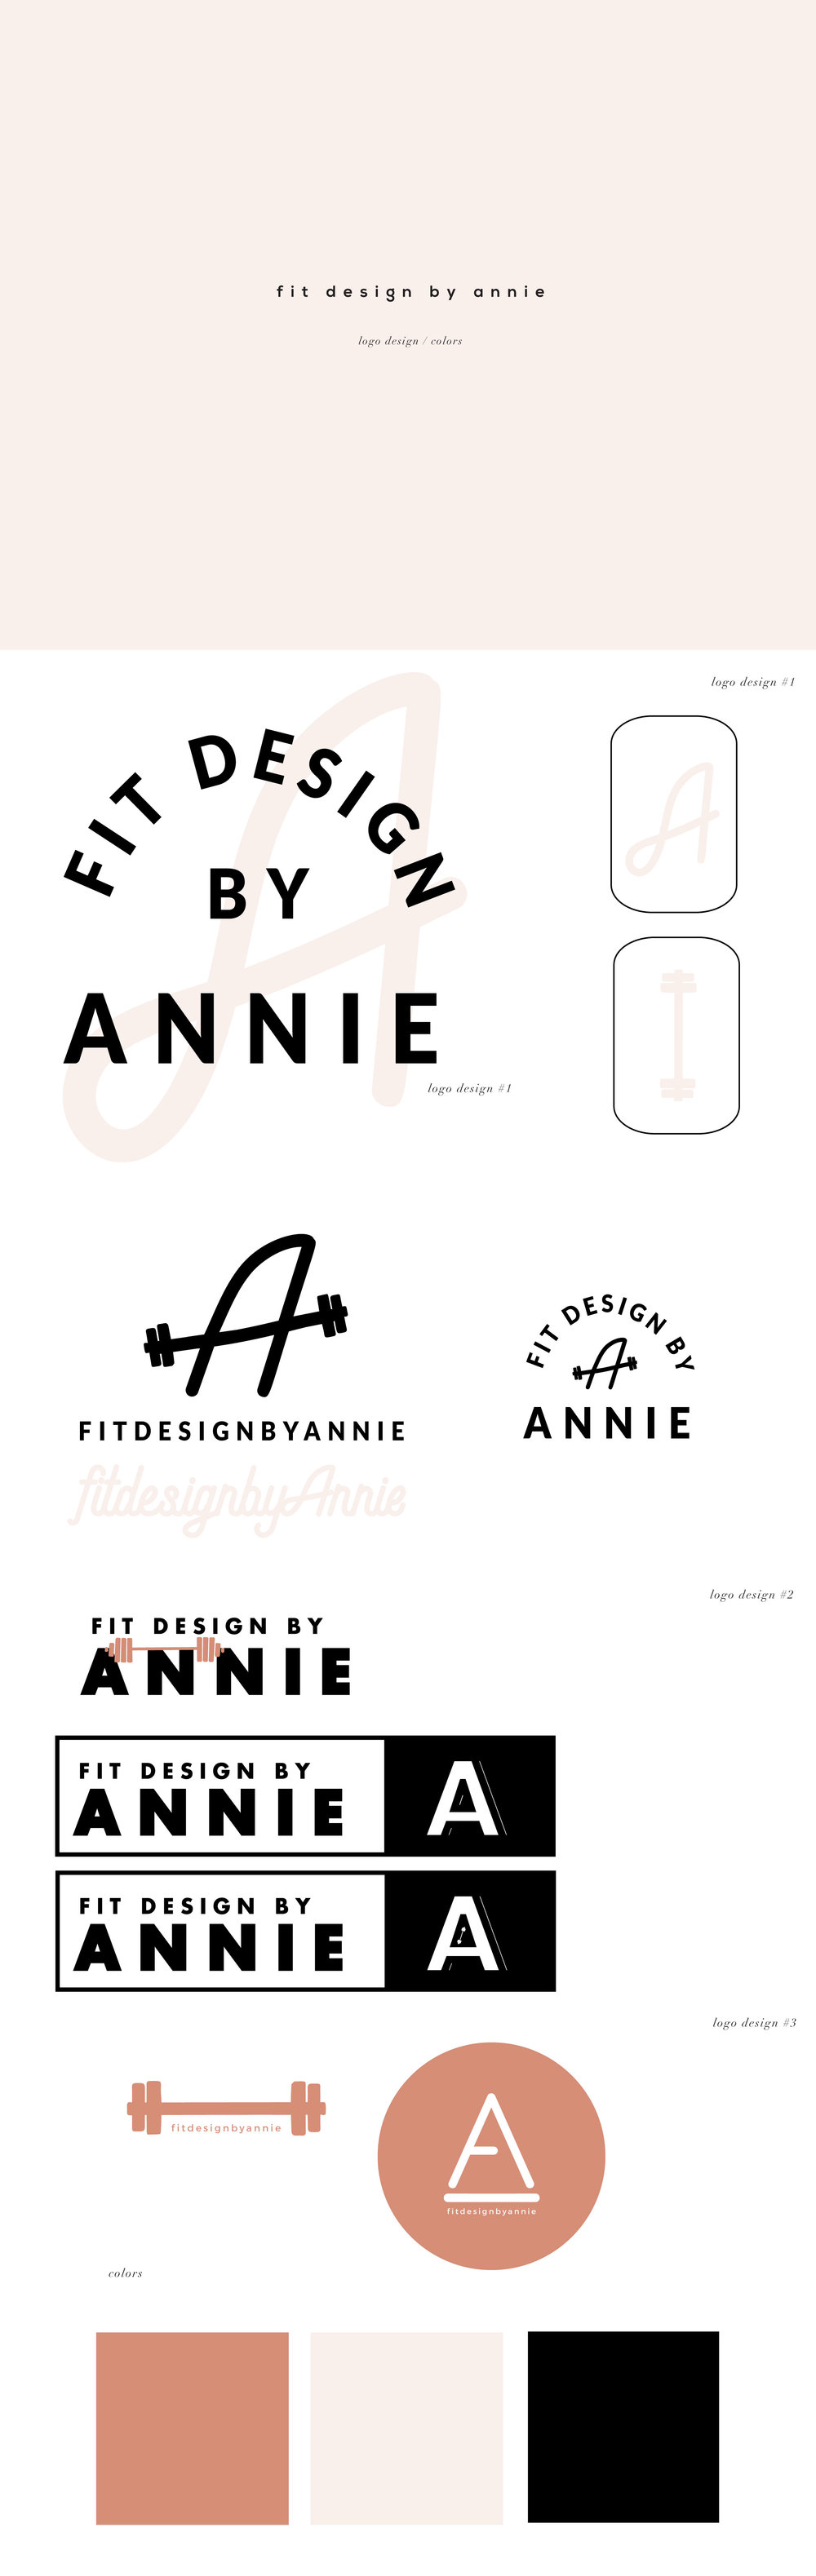 Fit-Design-by-annie-brand.jpg